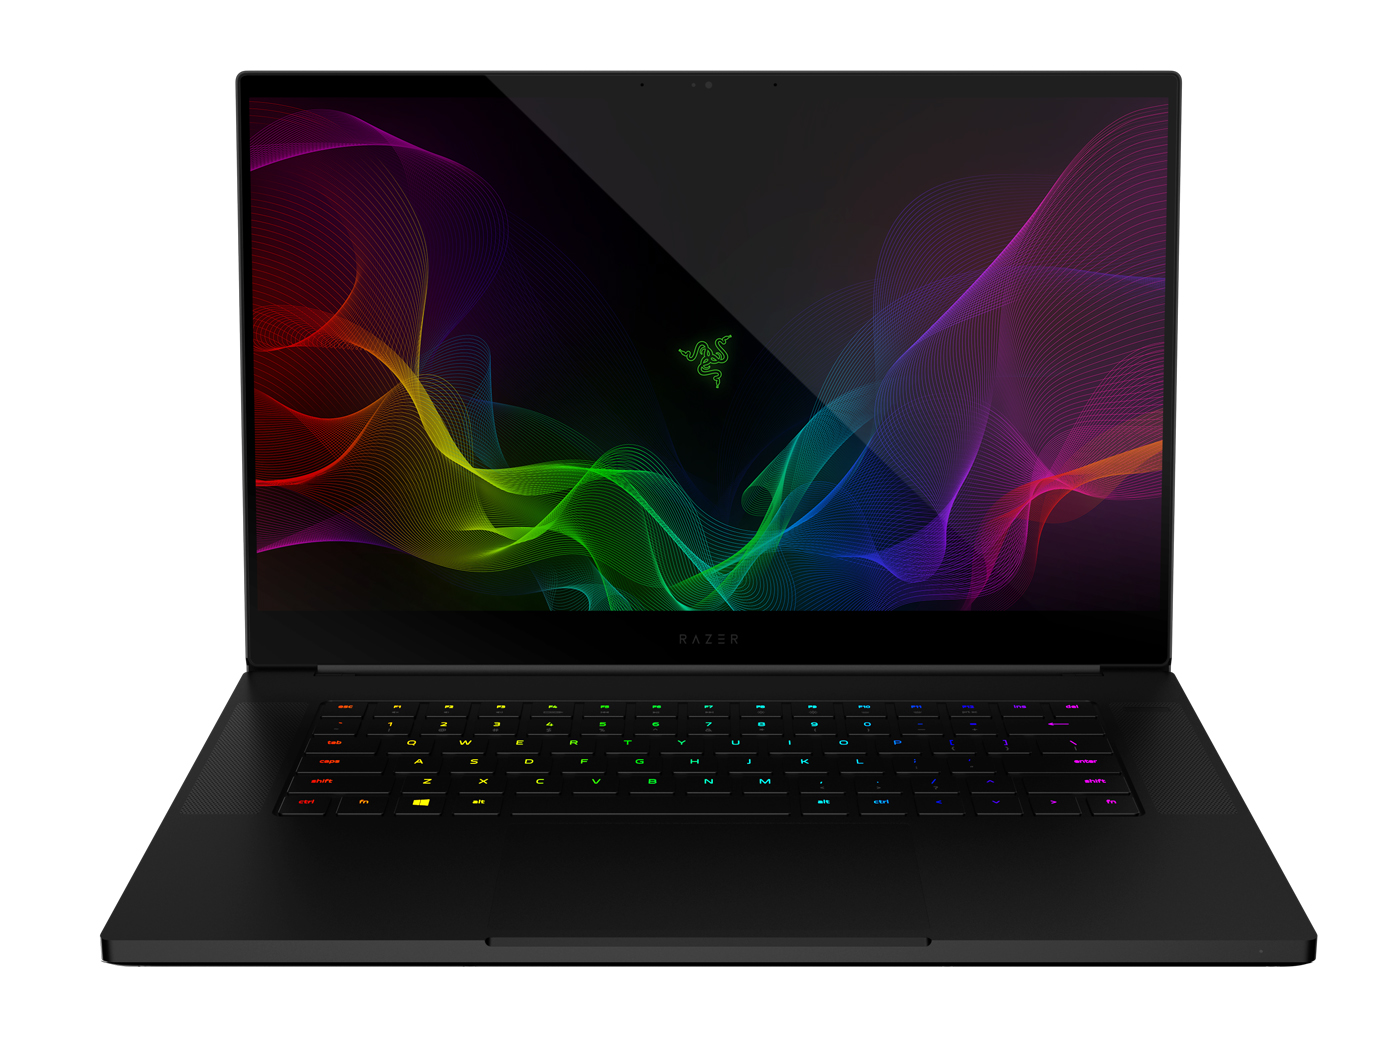 Razer's latest Blade Stealth laptop is fully classic with 4K Display